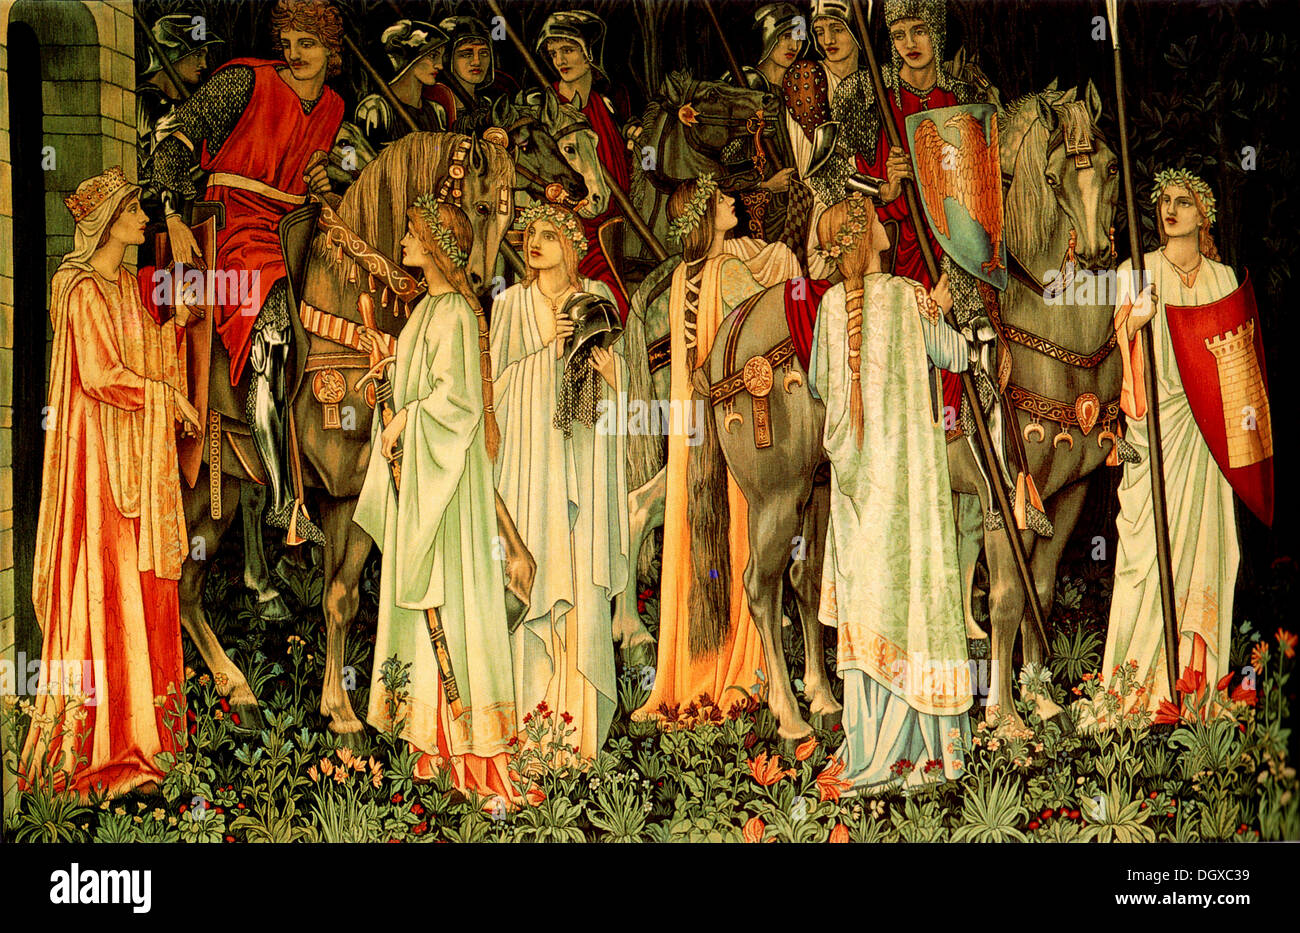 The Arming and Departure of the Knights - by Edward Burne-Jones, 1891 - Stock Image